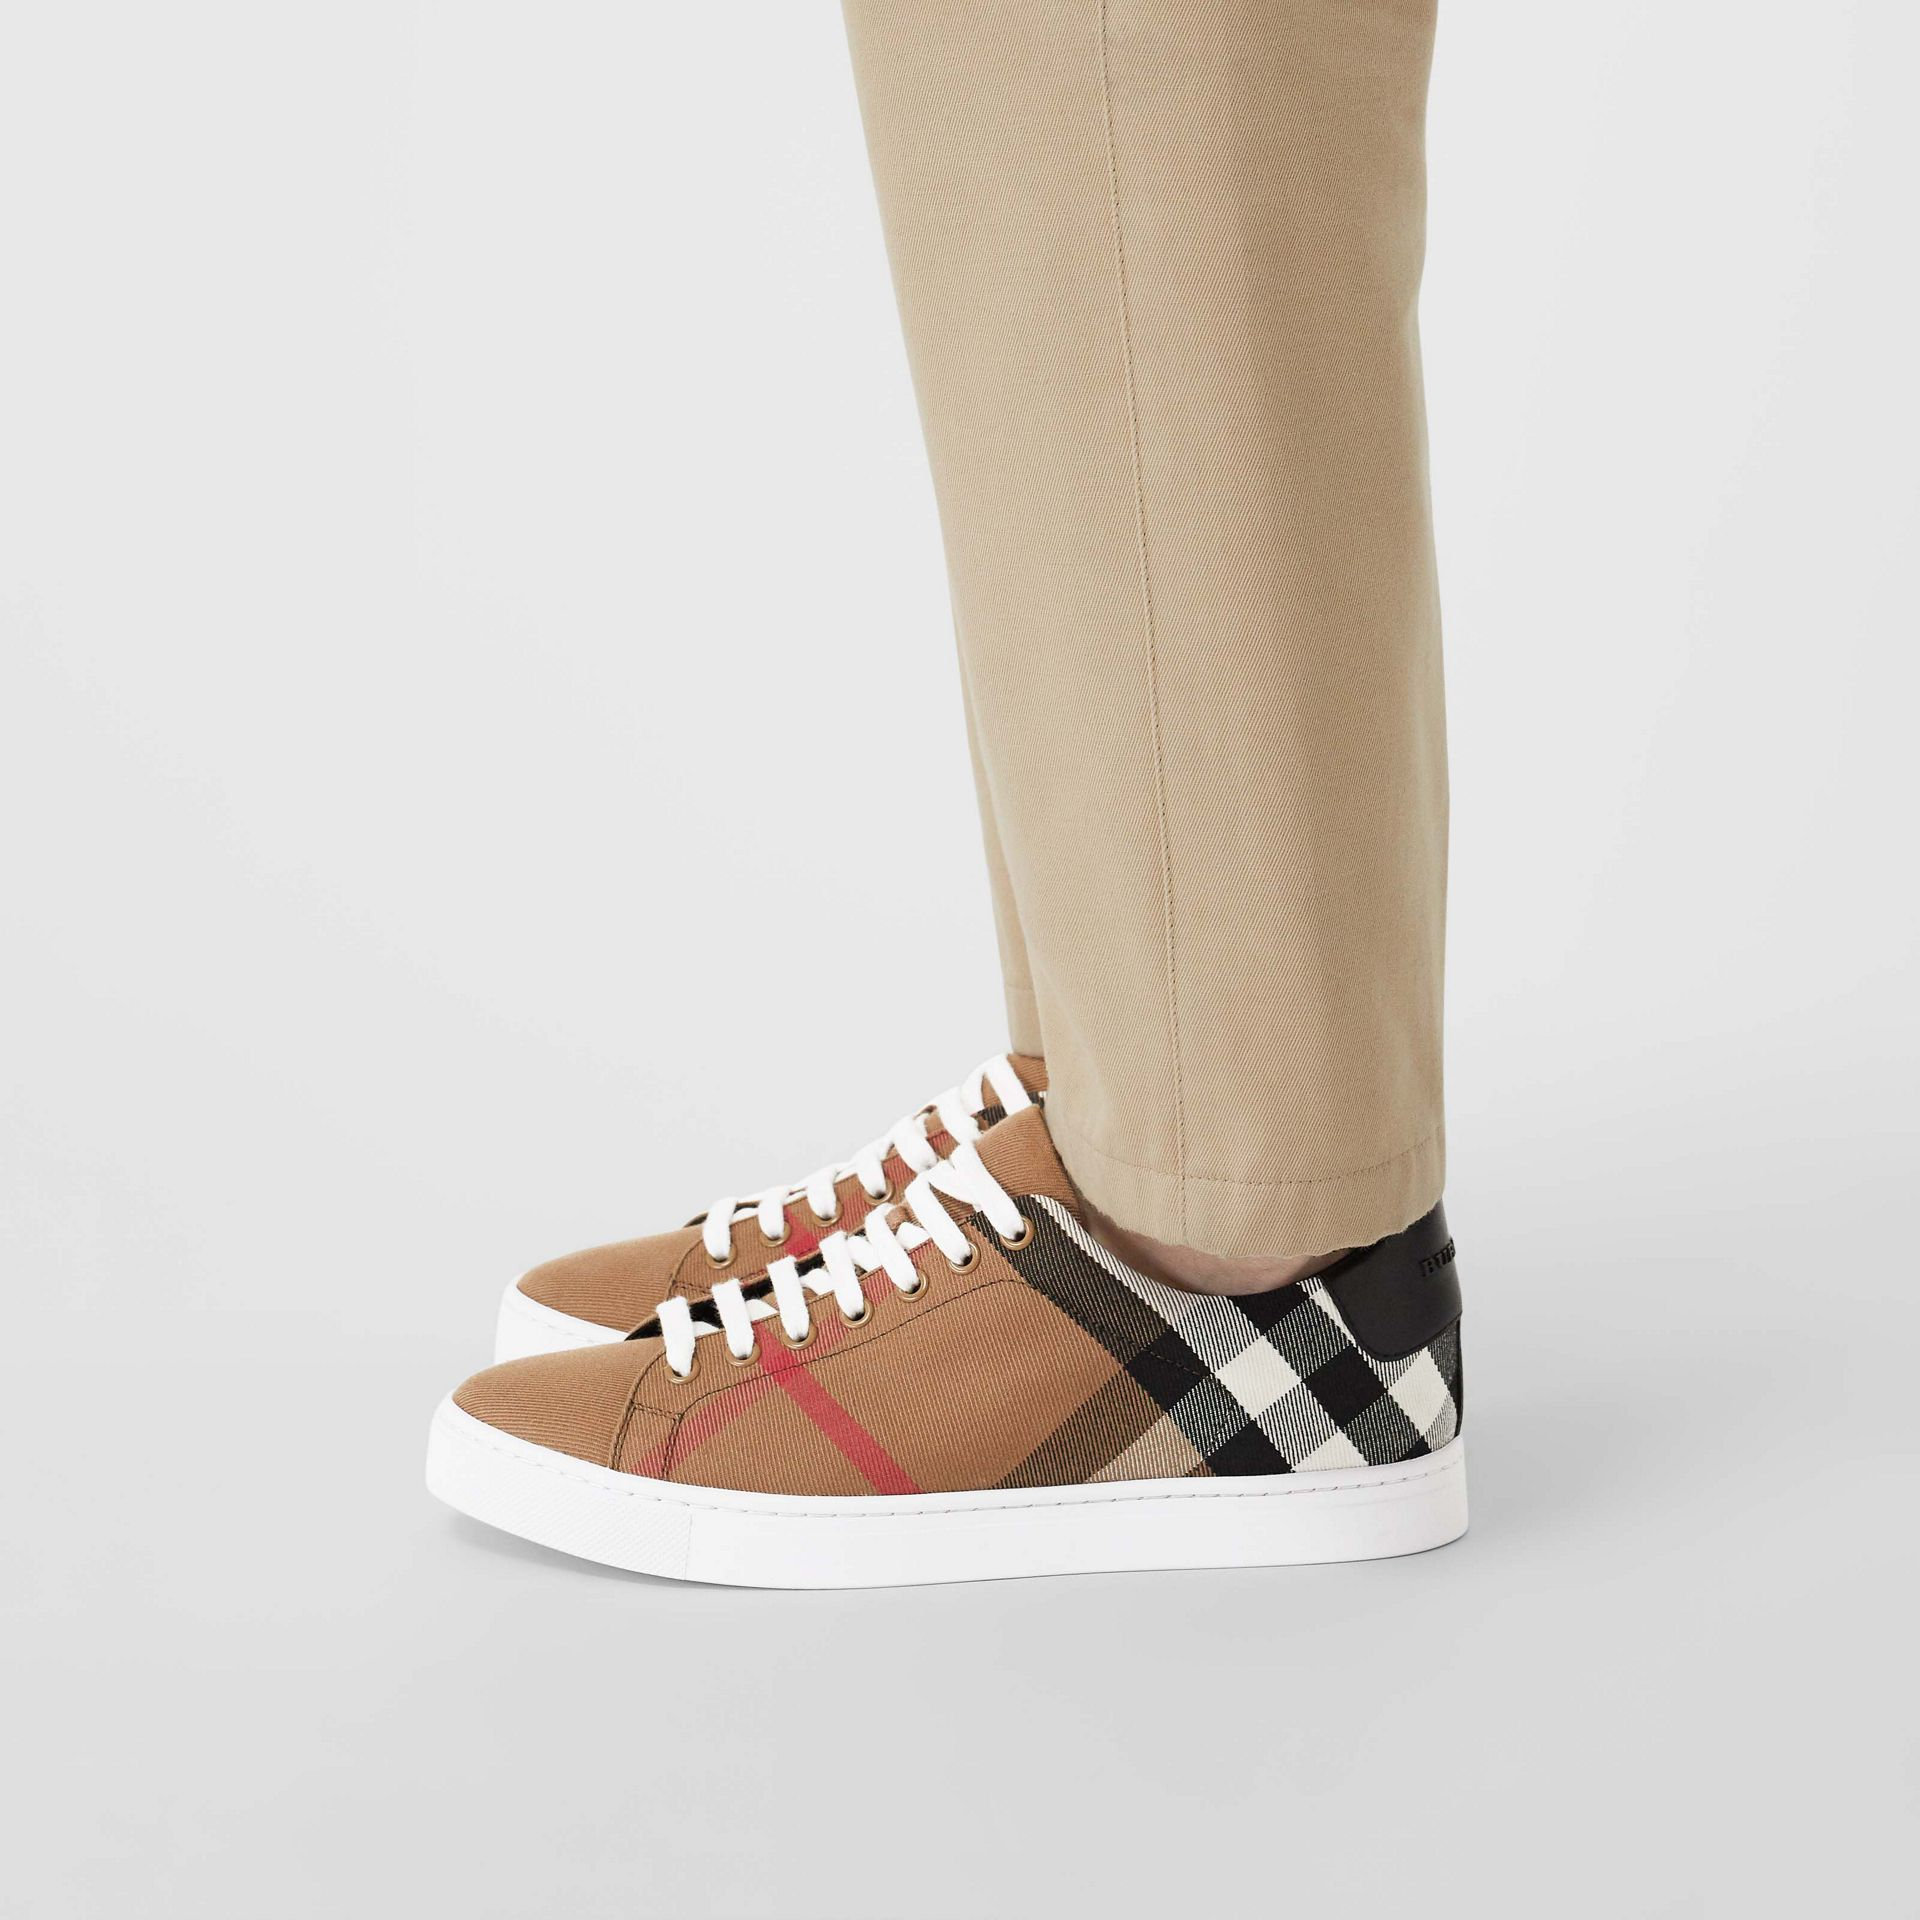 House Check and Leather Sneakers in Check/black - Men | Burberry United Kingdom - gallery image 2